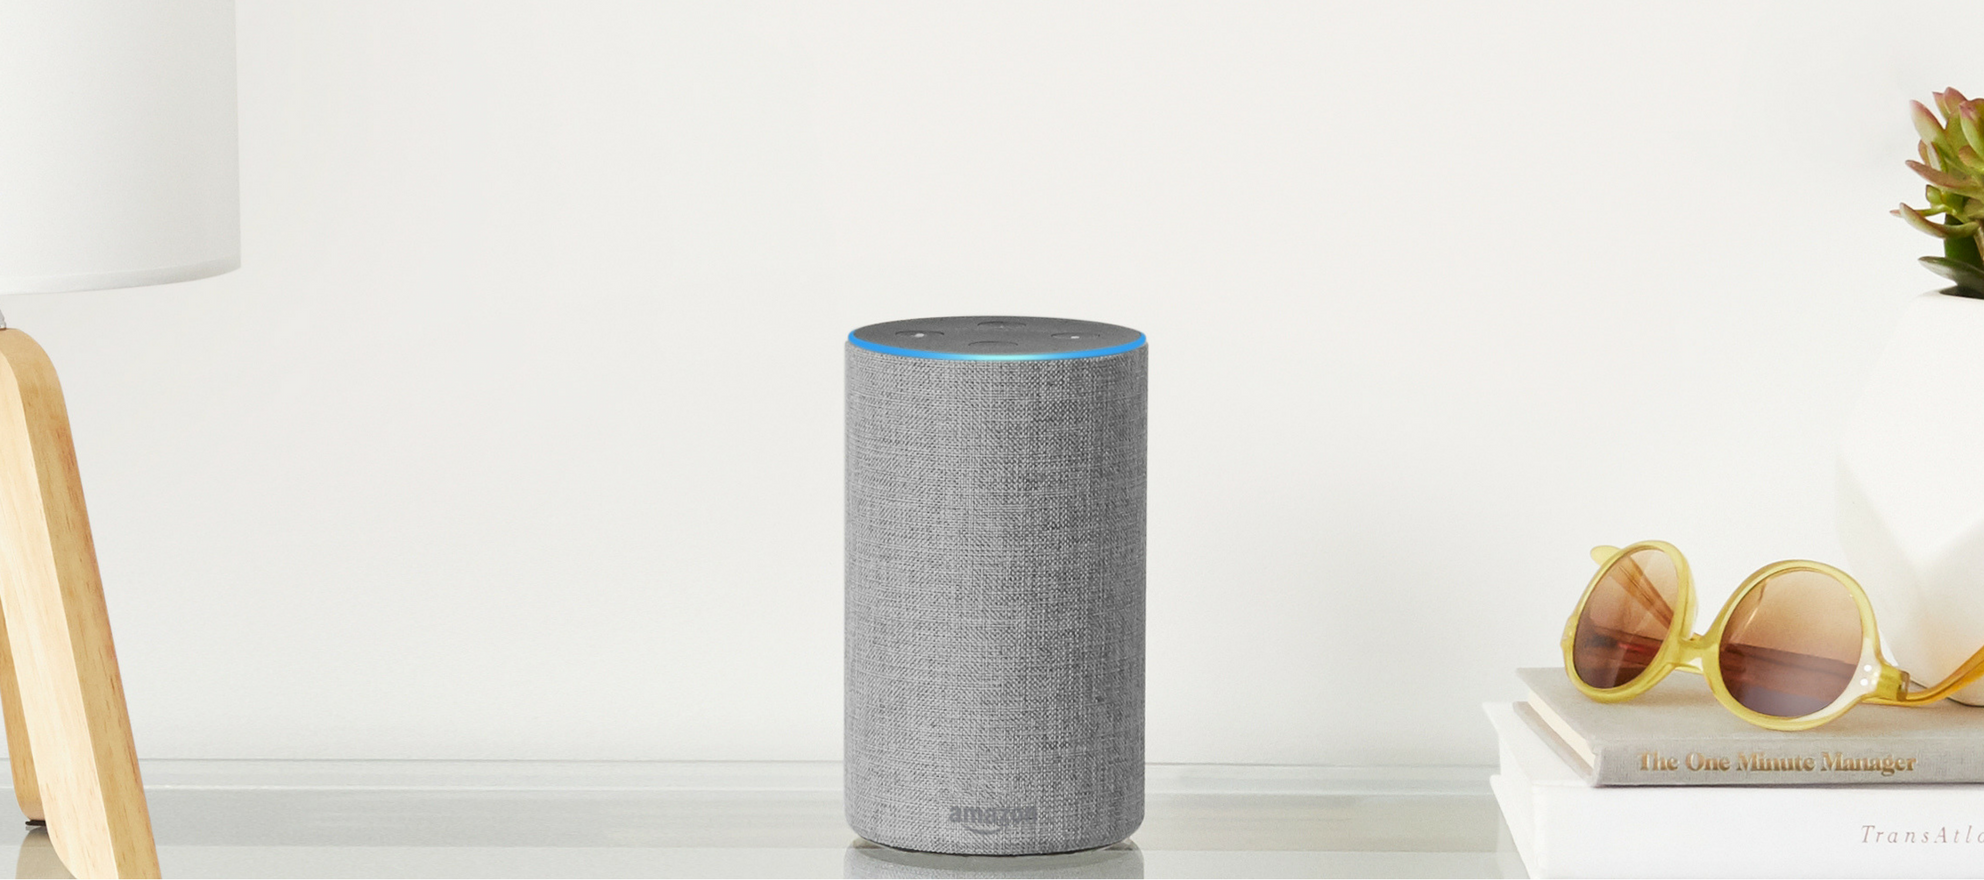 How agents can reach clients through voice assistants